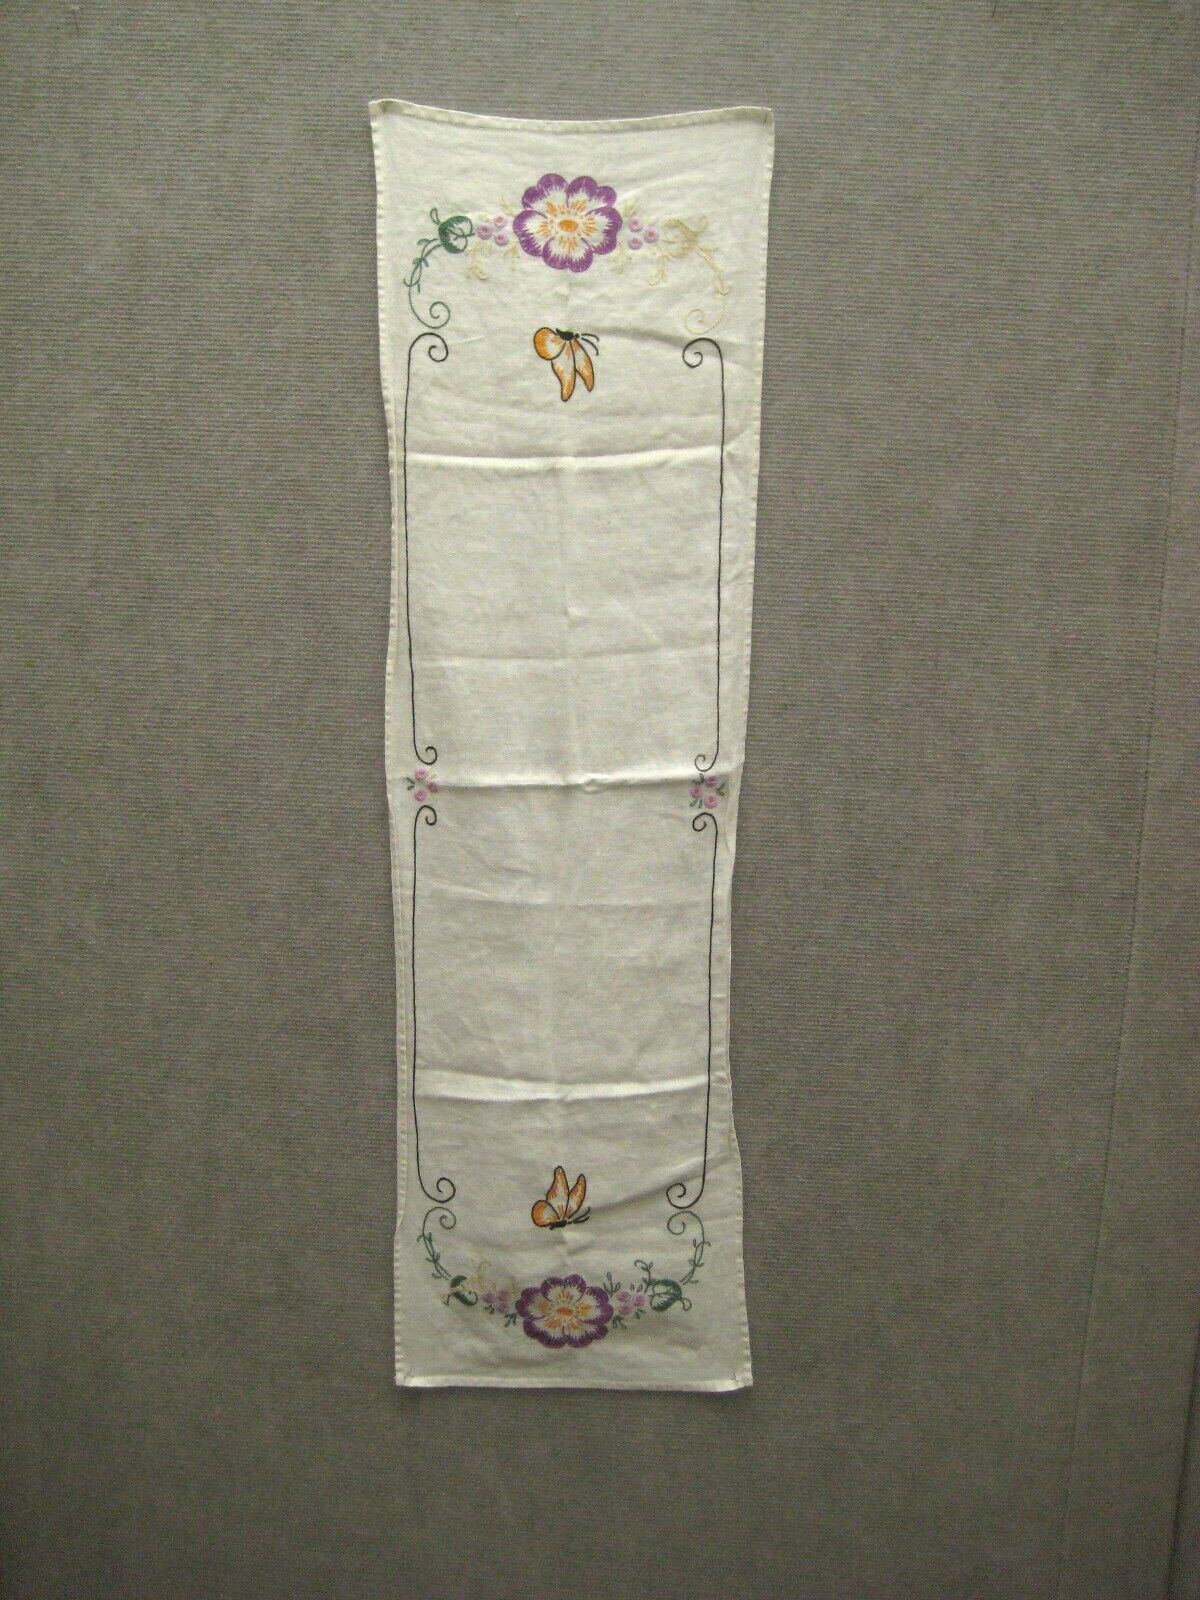 Tea Towel 38 In Kitchen Bathroom Crewel Embroidery Hand Stitch Floral Butterfly image 5